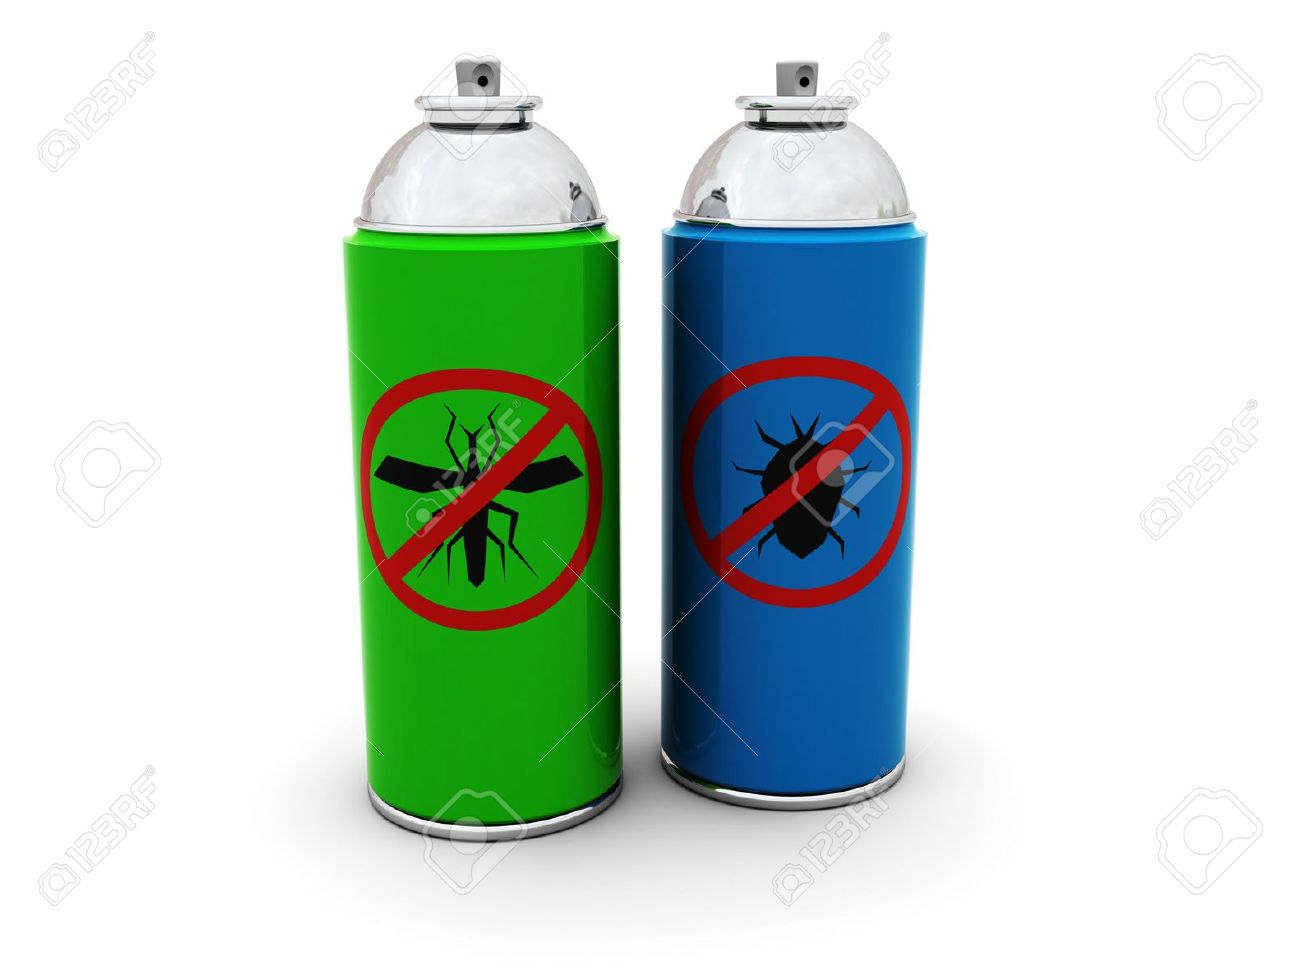 3d illustration of insecticide spray cans over white background